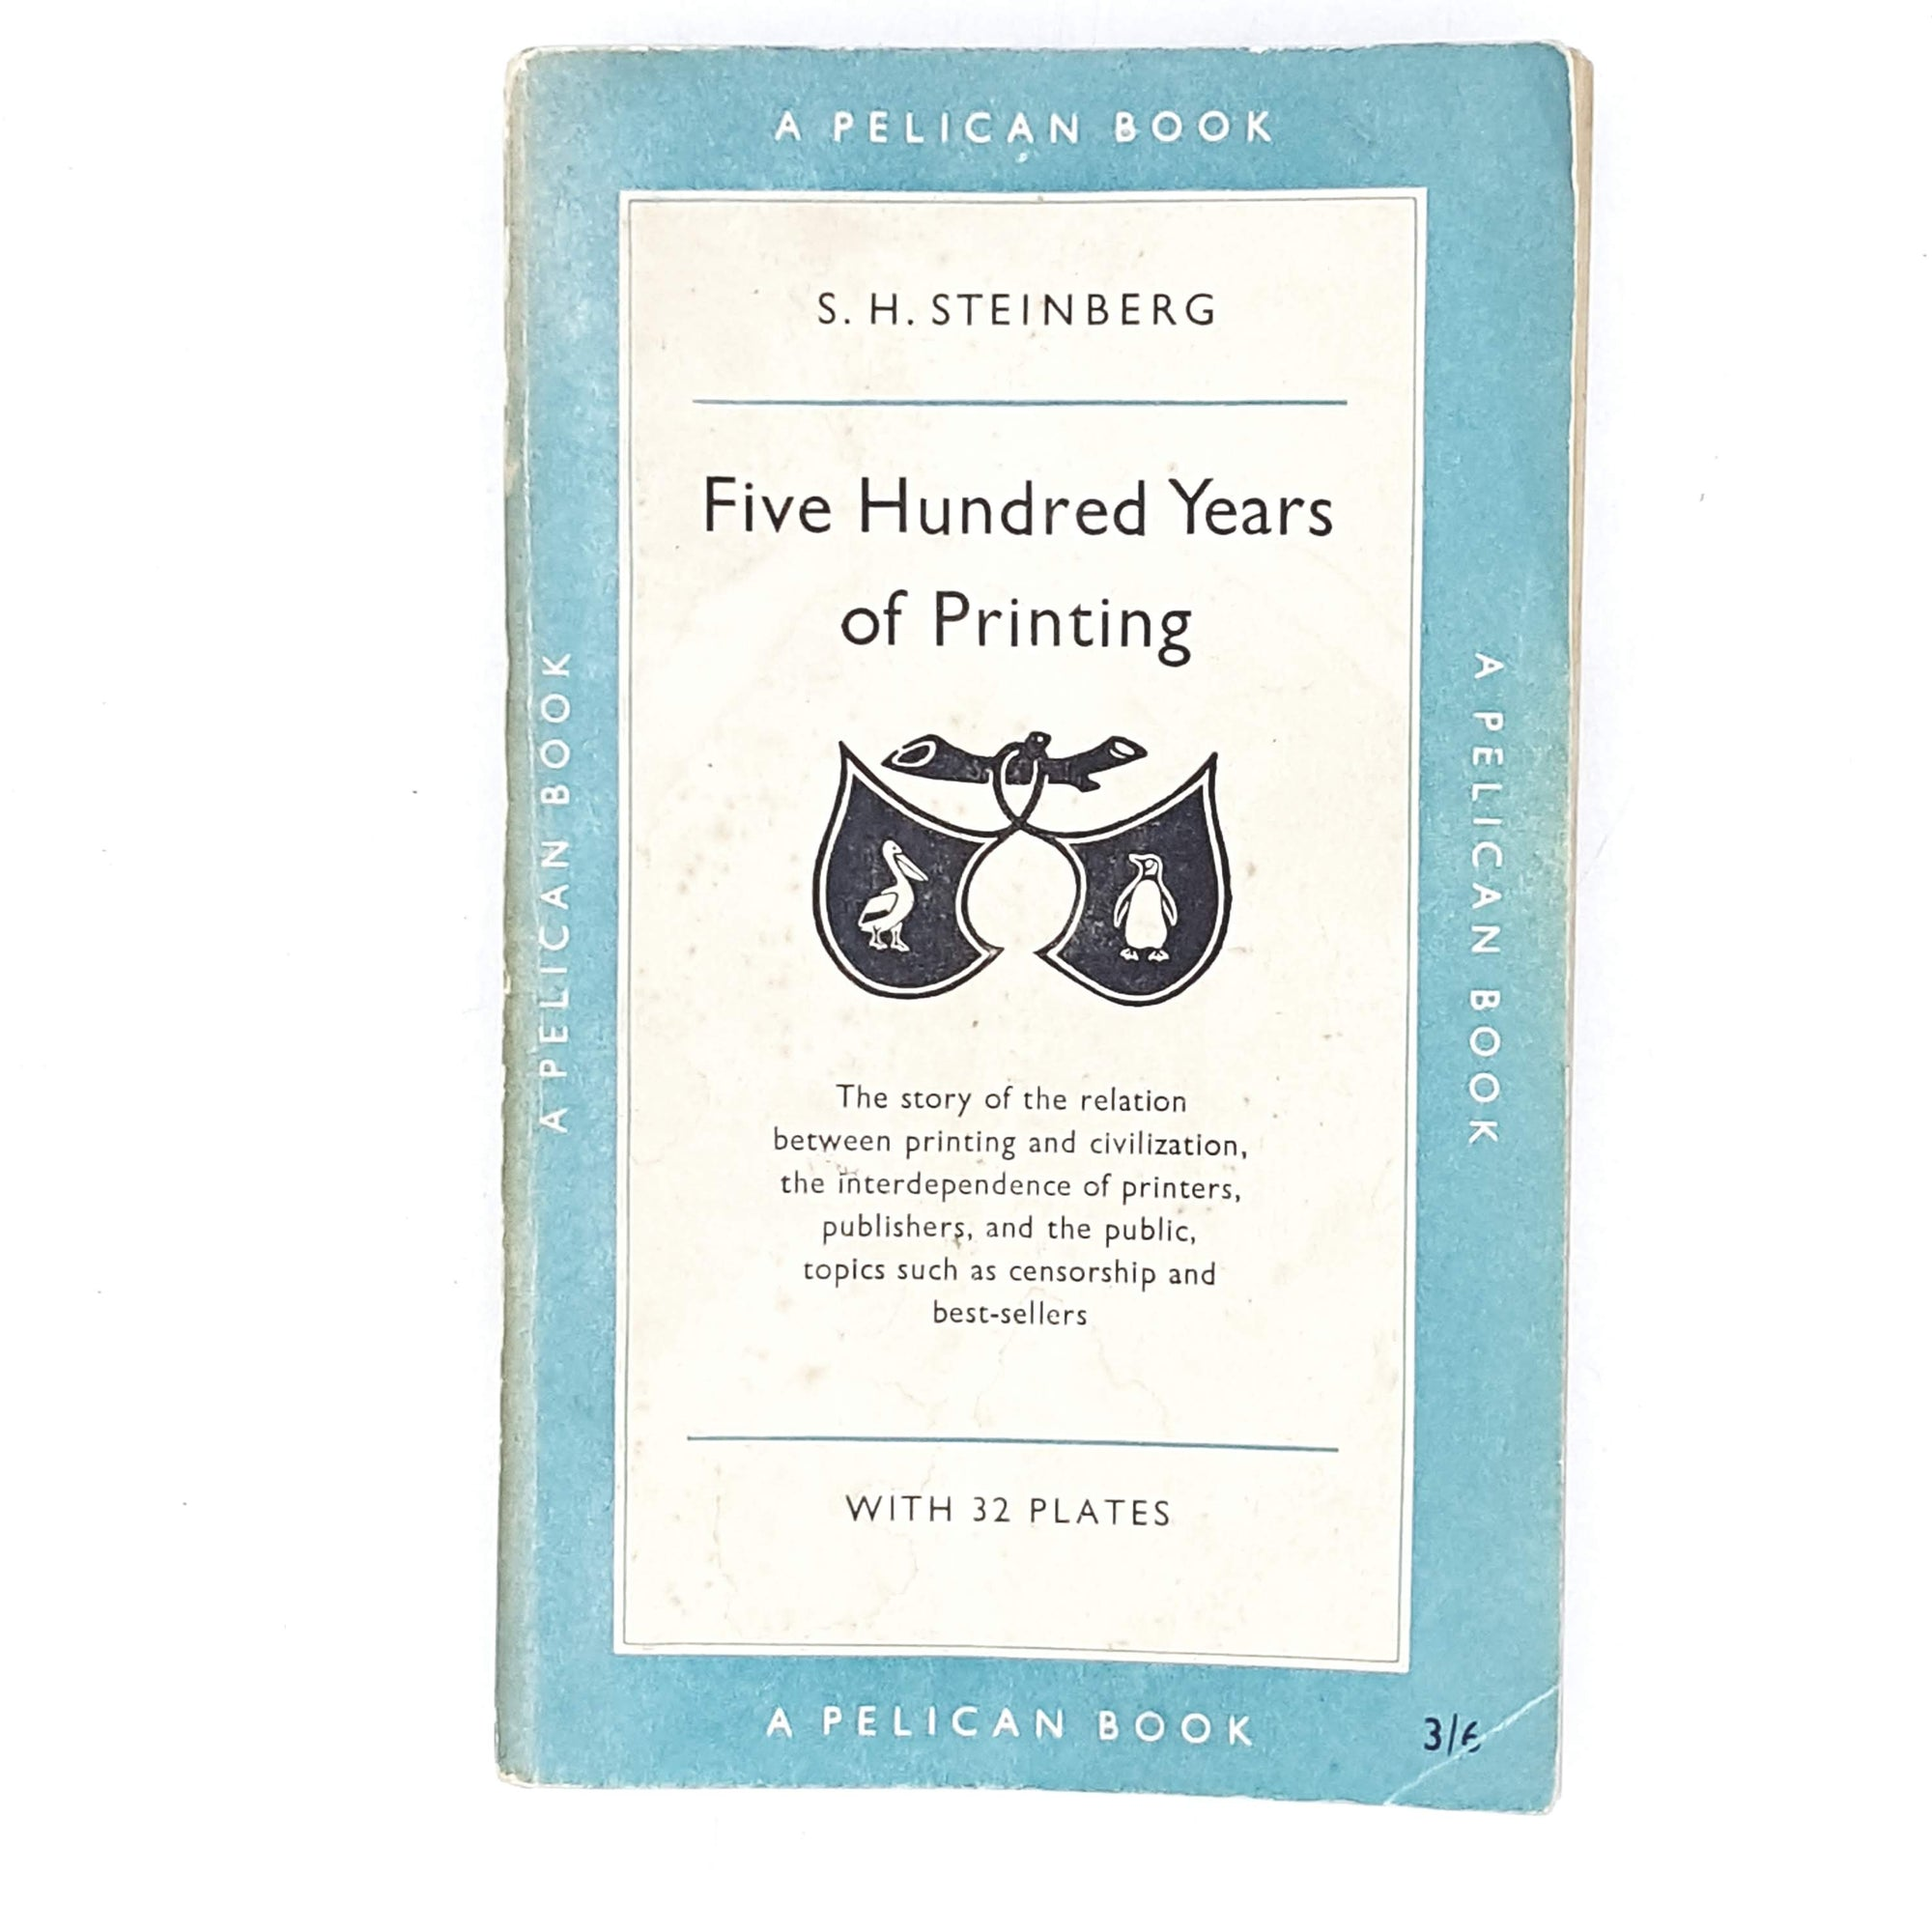 vintage-pelican-five-hundred-years-of-printing-by-s.-h.-steinberg-1955-pale-blue-country-house-library